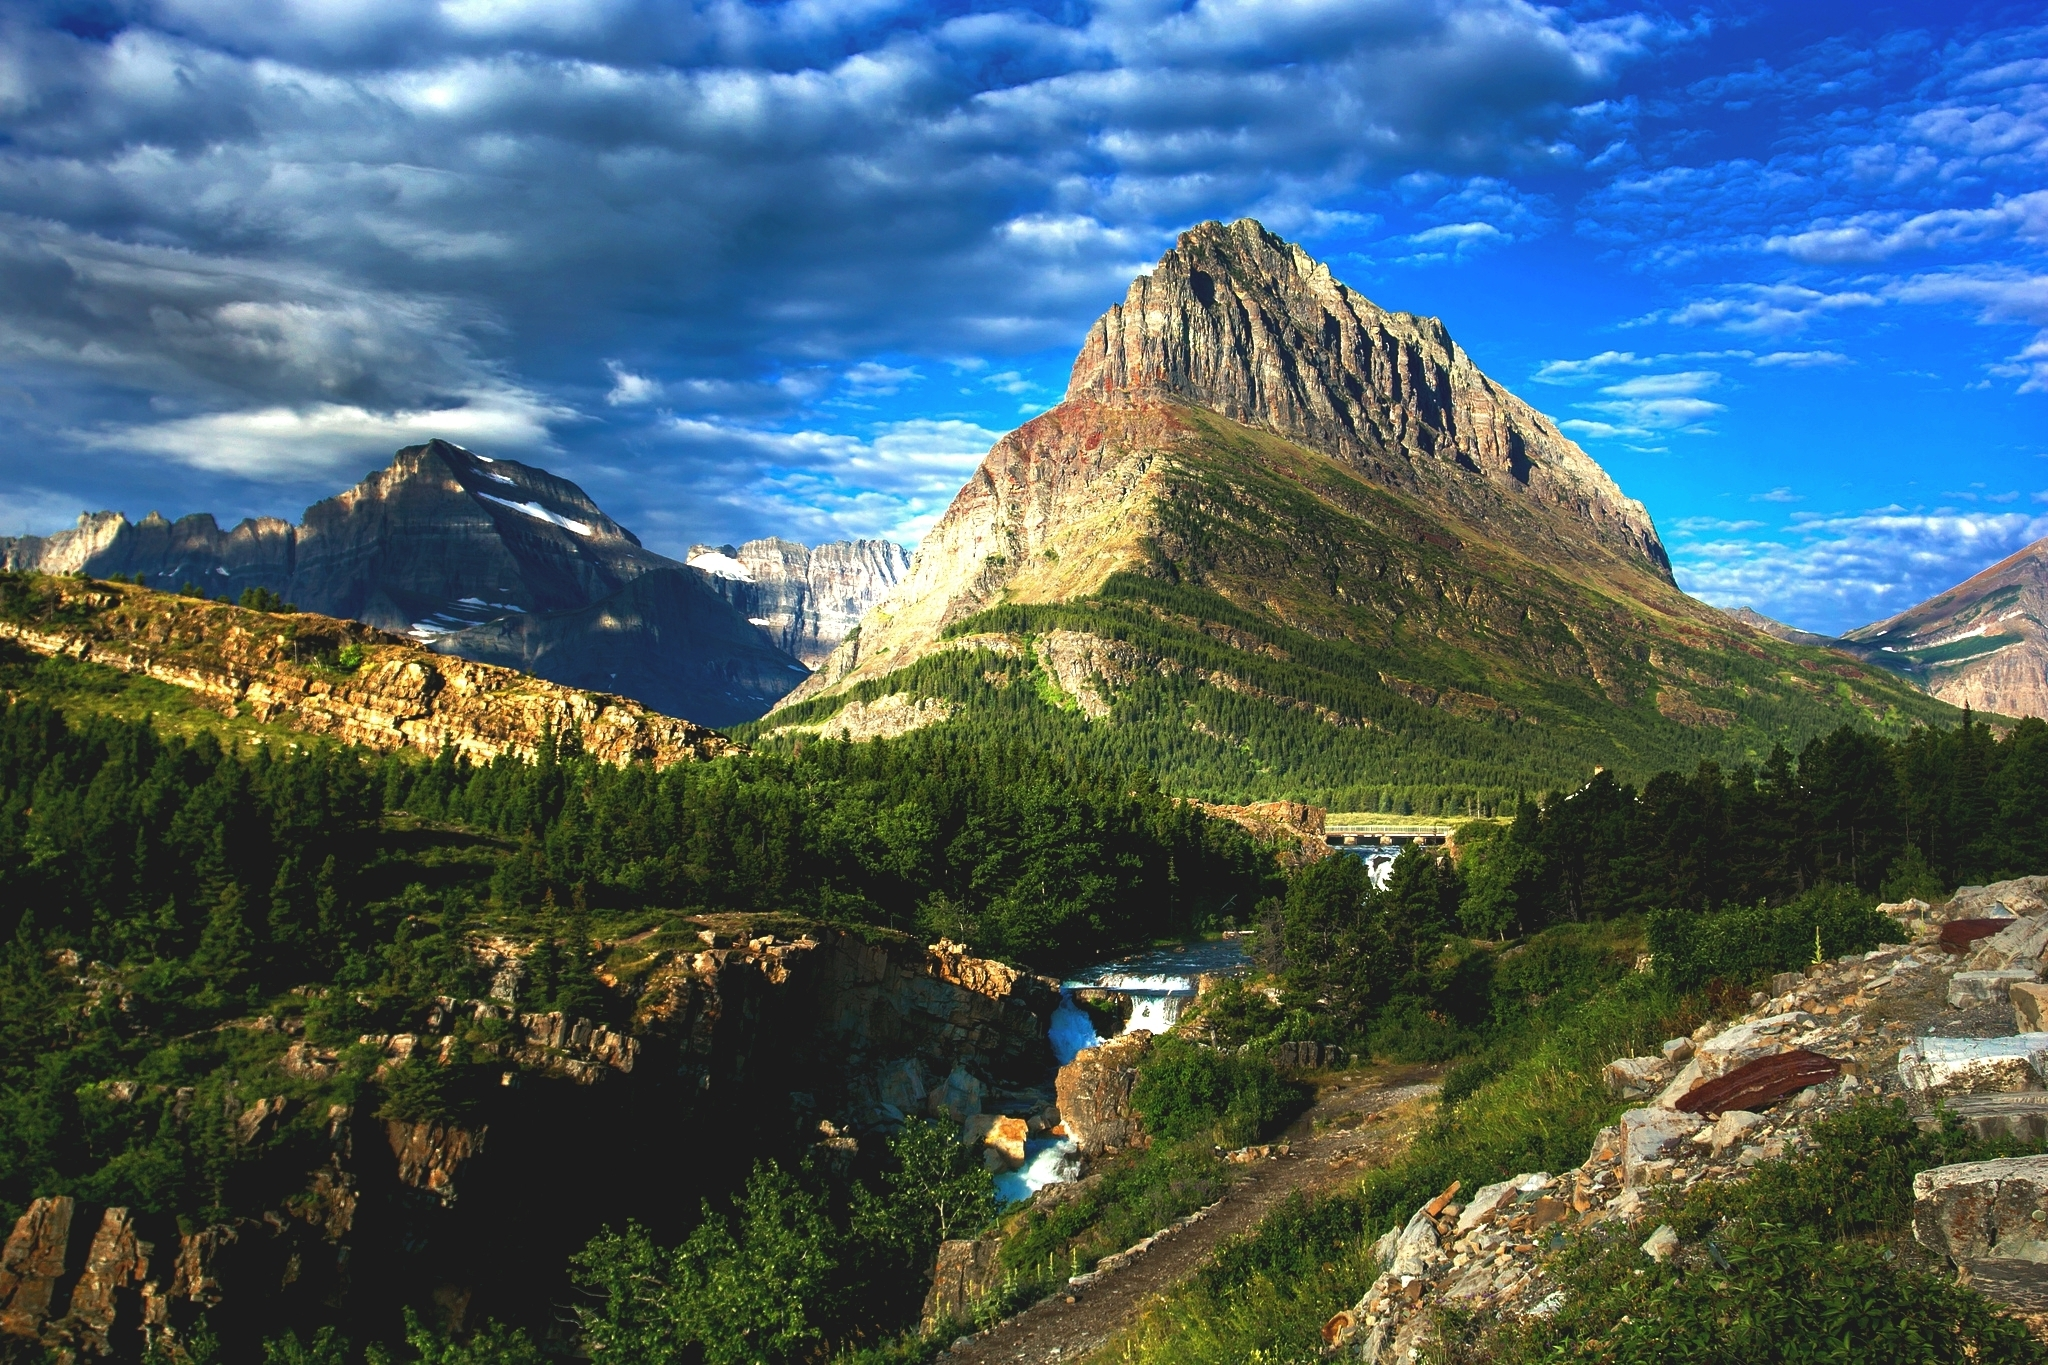 summer on glacier national park desktop background - media file